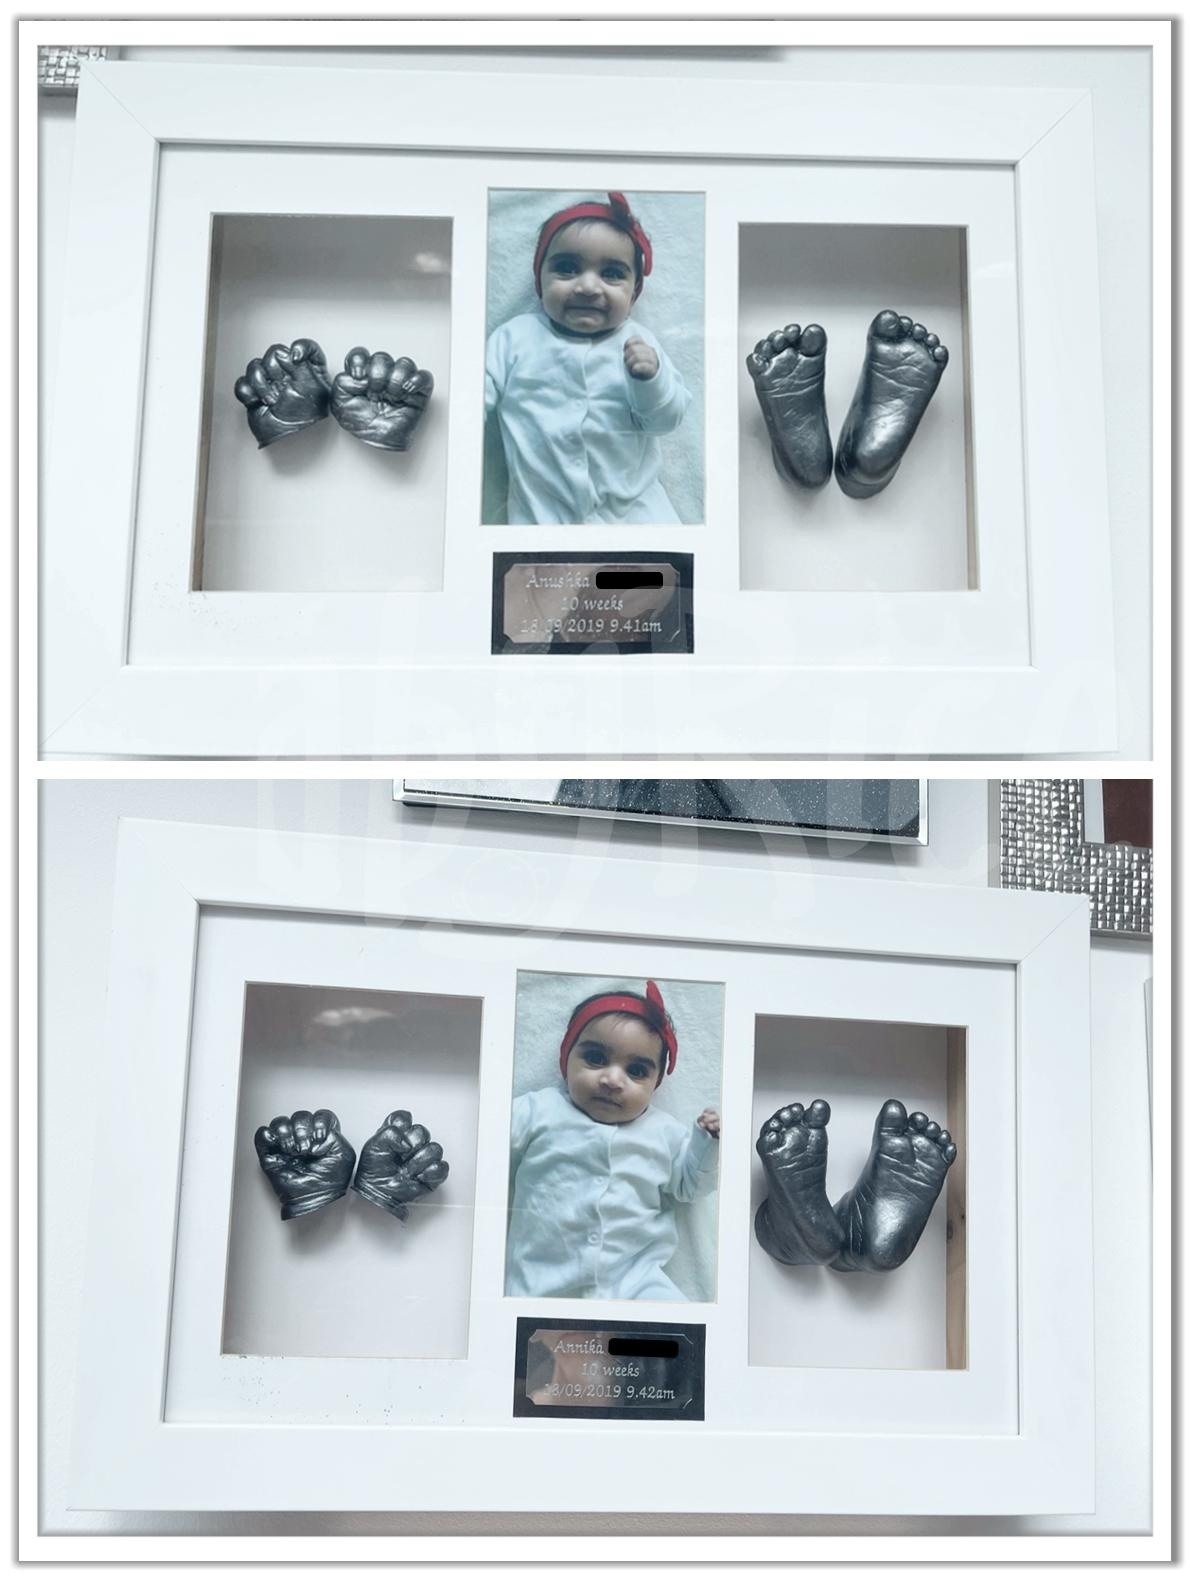 Twins Baby Hand Foot Casting with White Frame